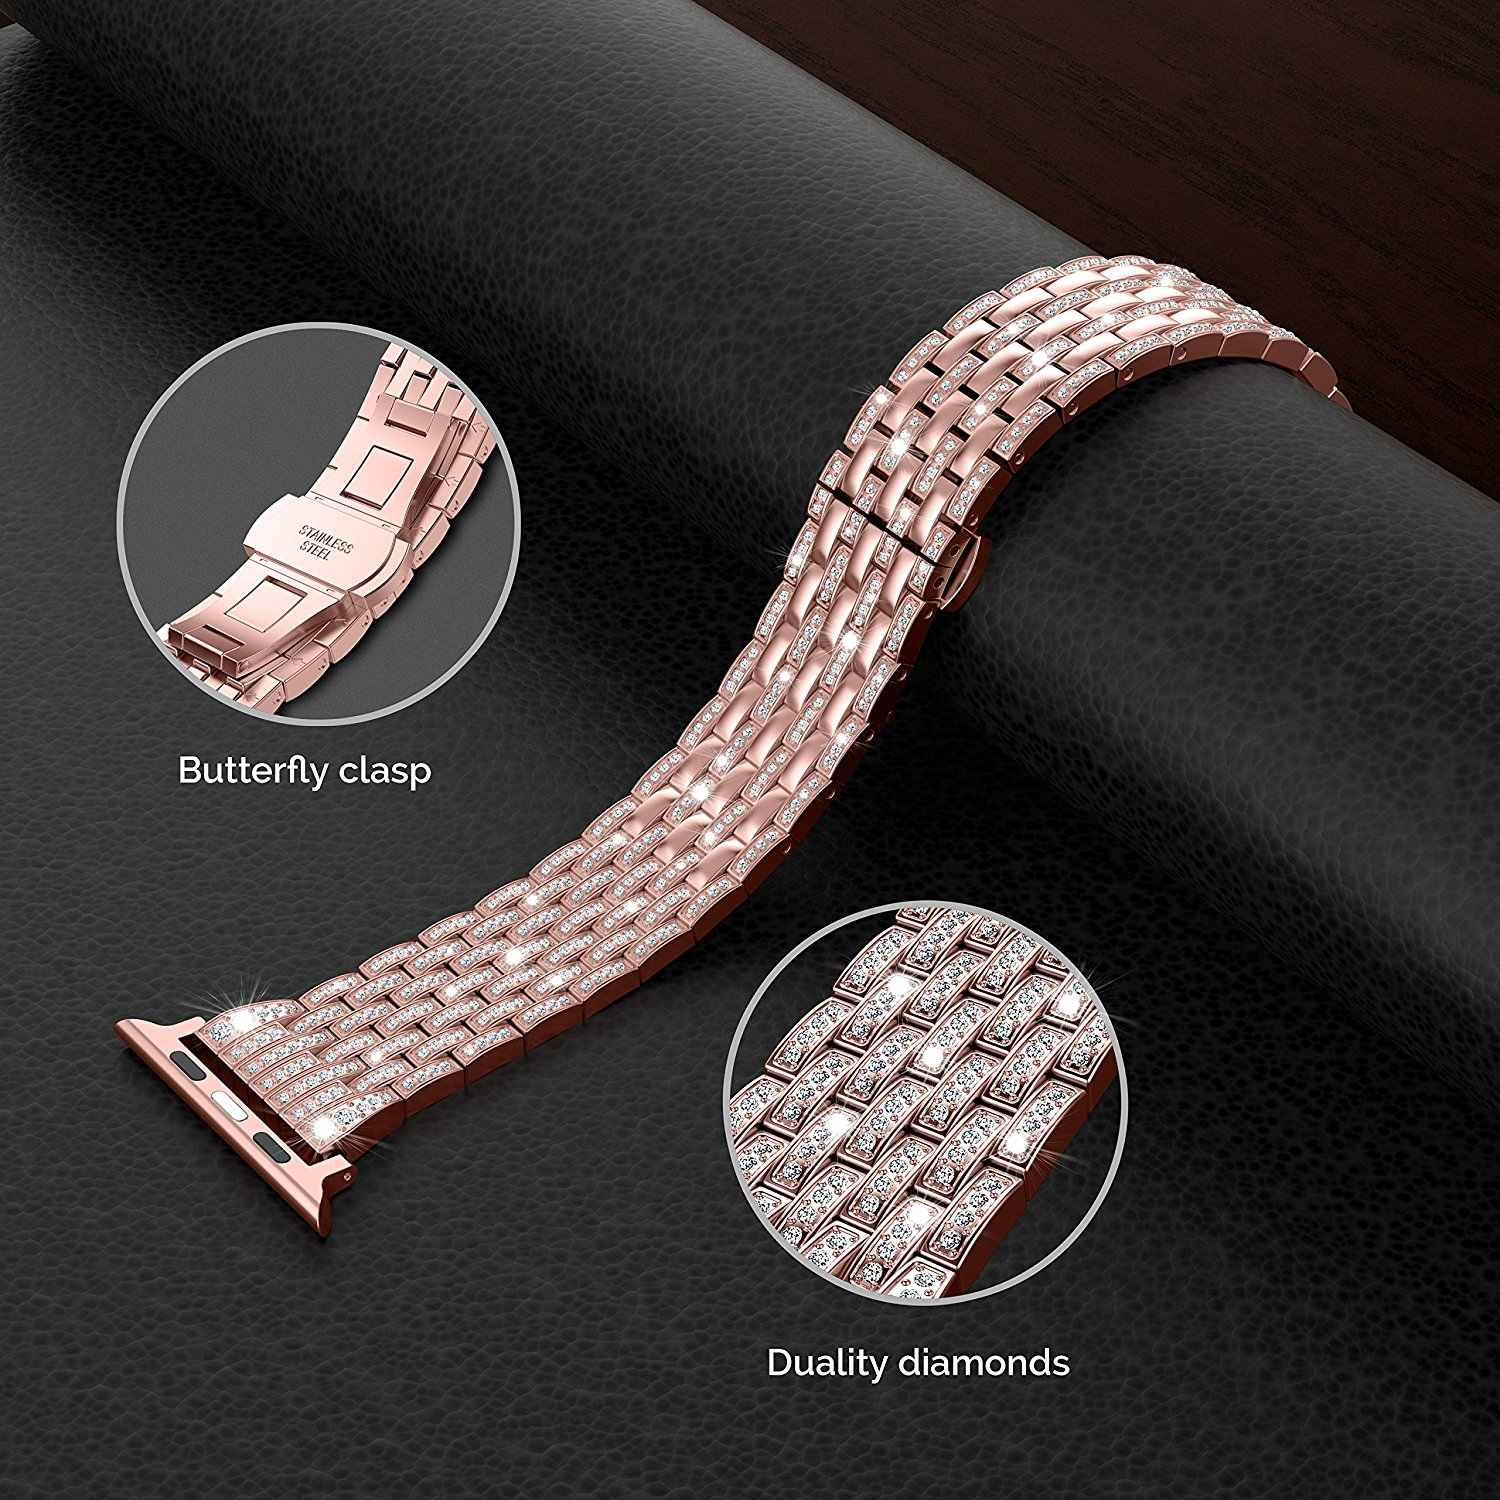 Luxury Rhinestone Diamond Strap for apple watch 44mm 42mm 40mm 38mm Stainless Steel Metal Watch Band For iWatch series 5 4 3 2 1